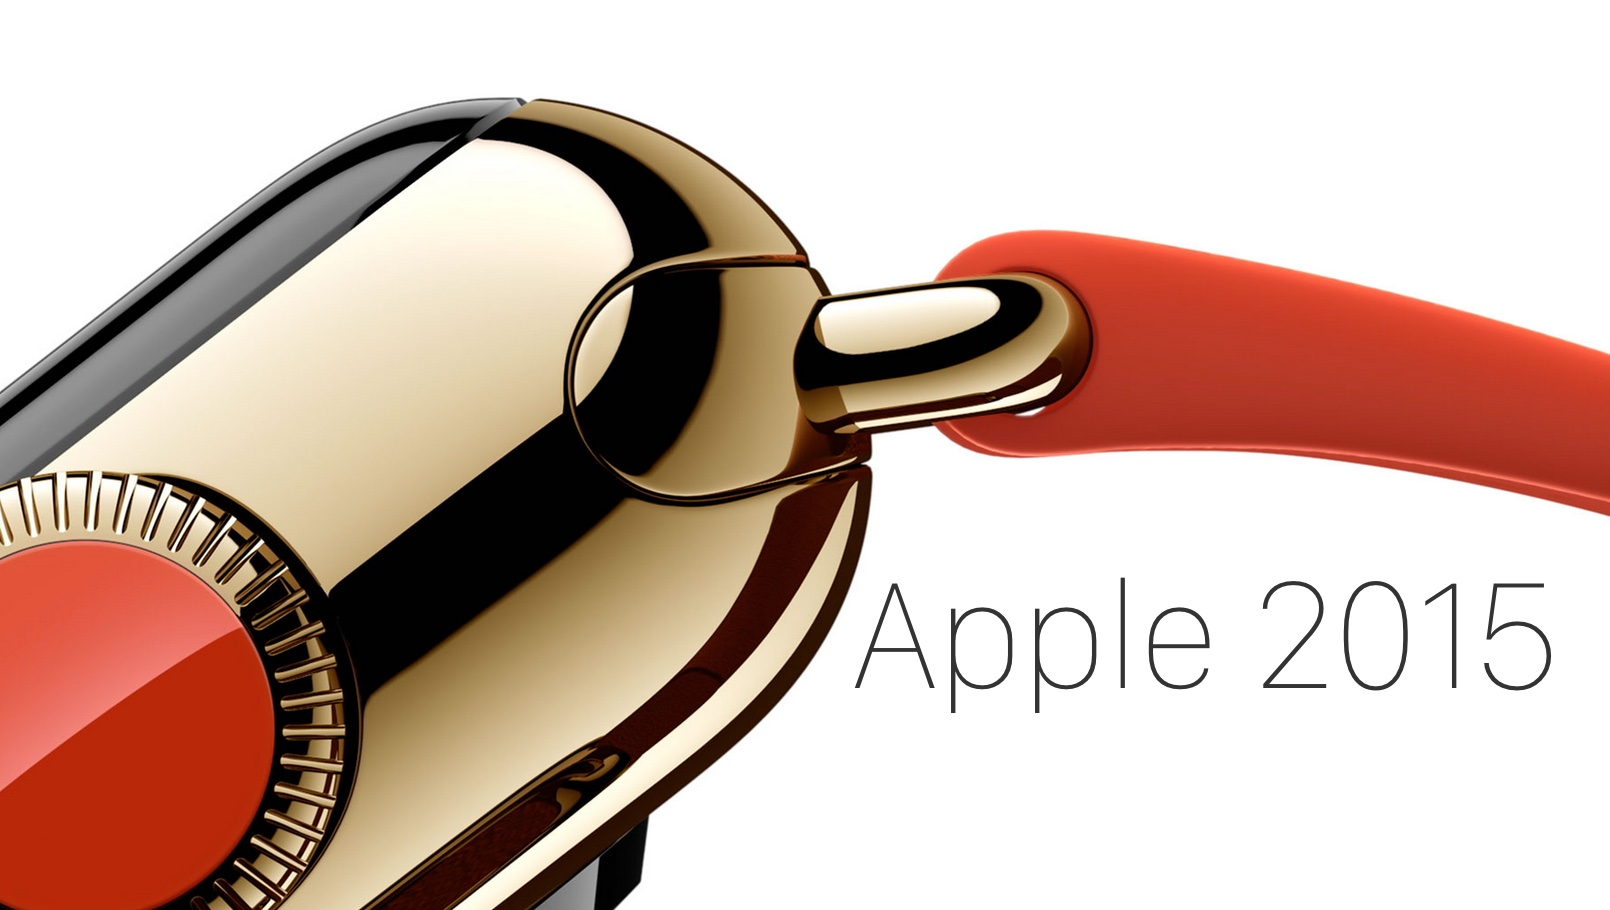 More about Apple's 'Spring Forward' Watch event on March 9